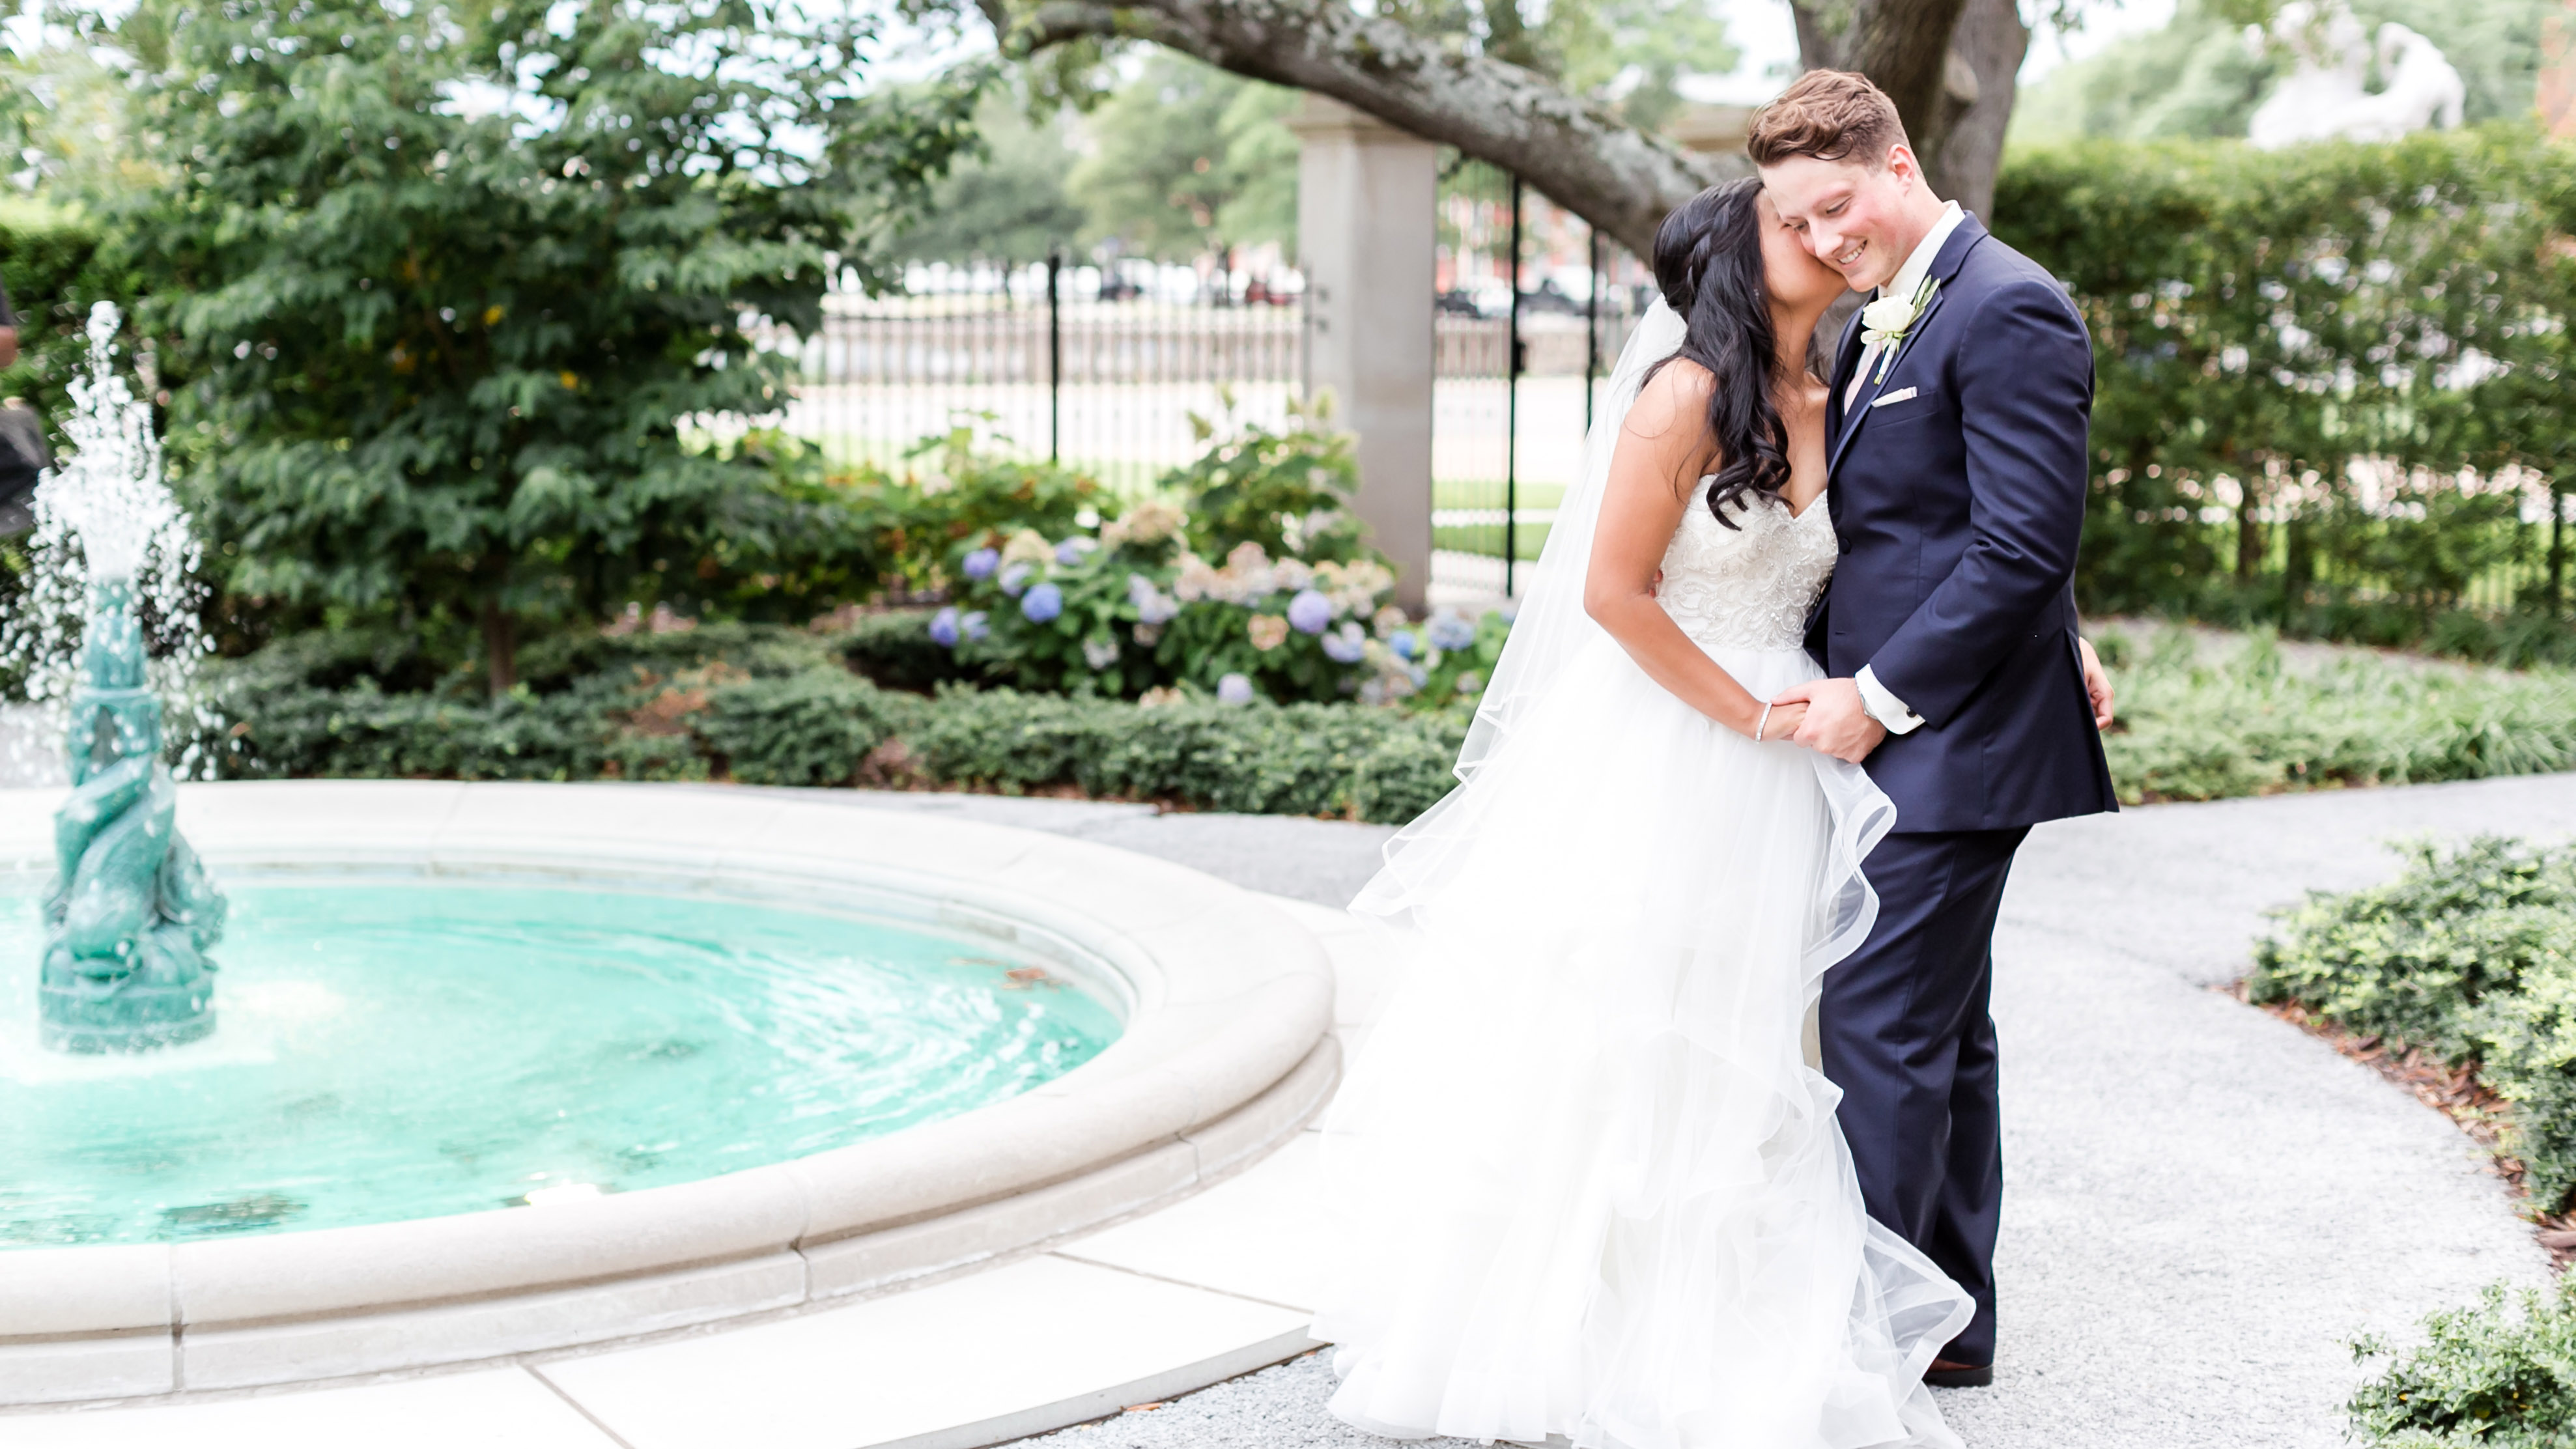 jessica_ryan_photography-chrysler_museum_of_art_wedding_norfolk_virginia_wedding_photographer